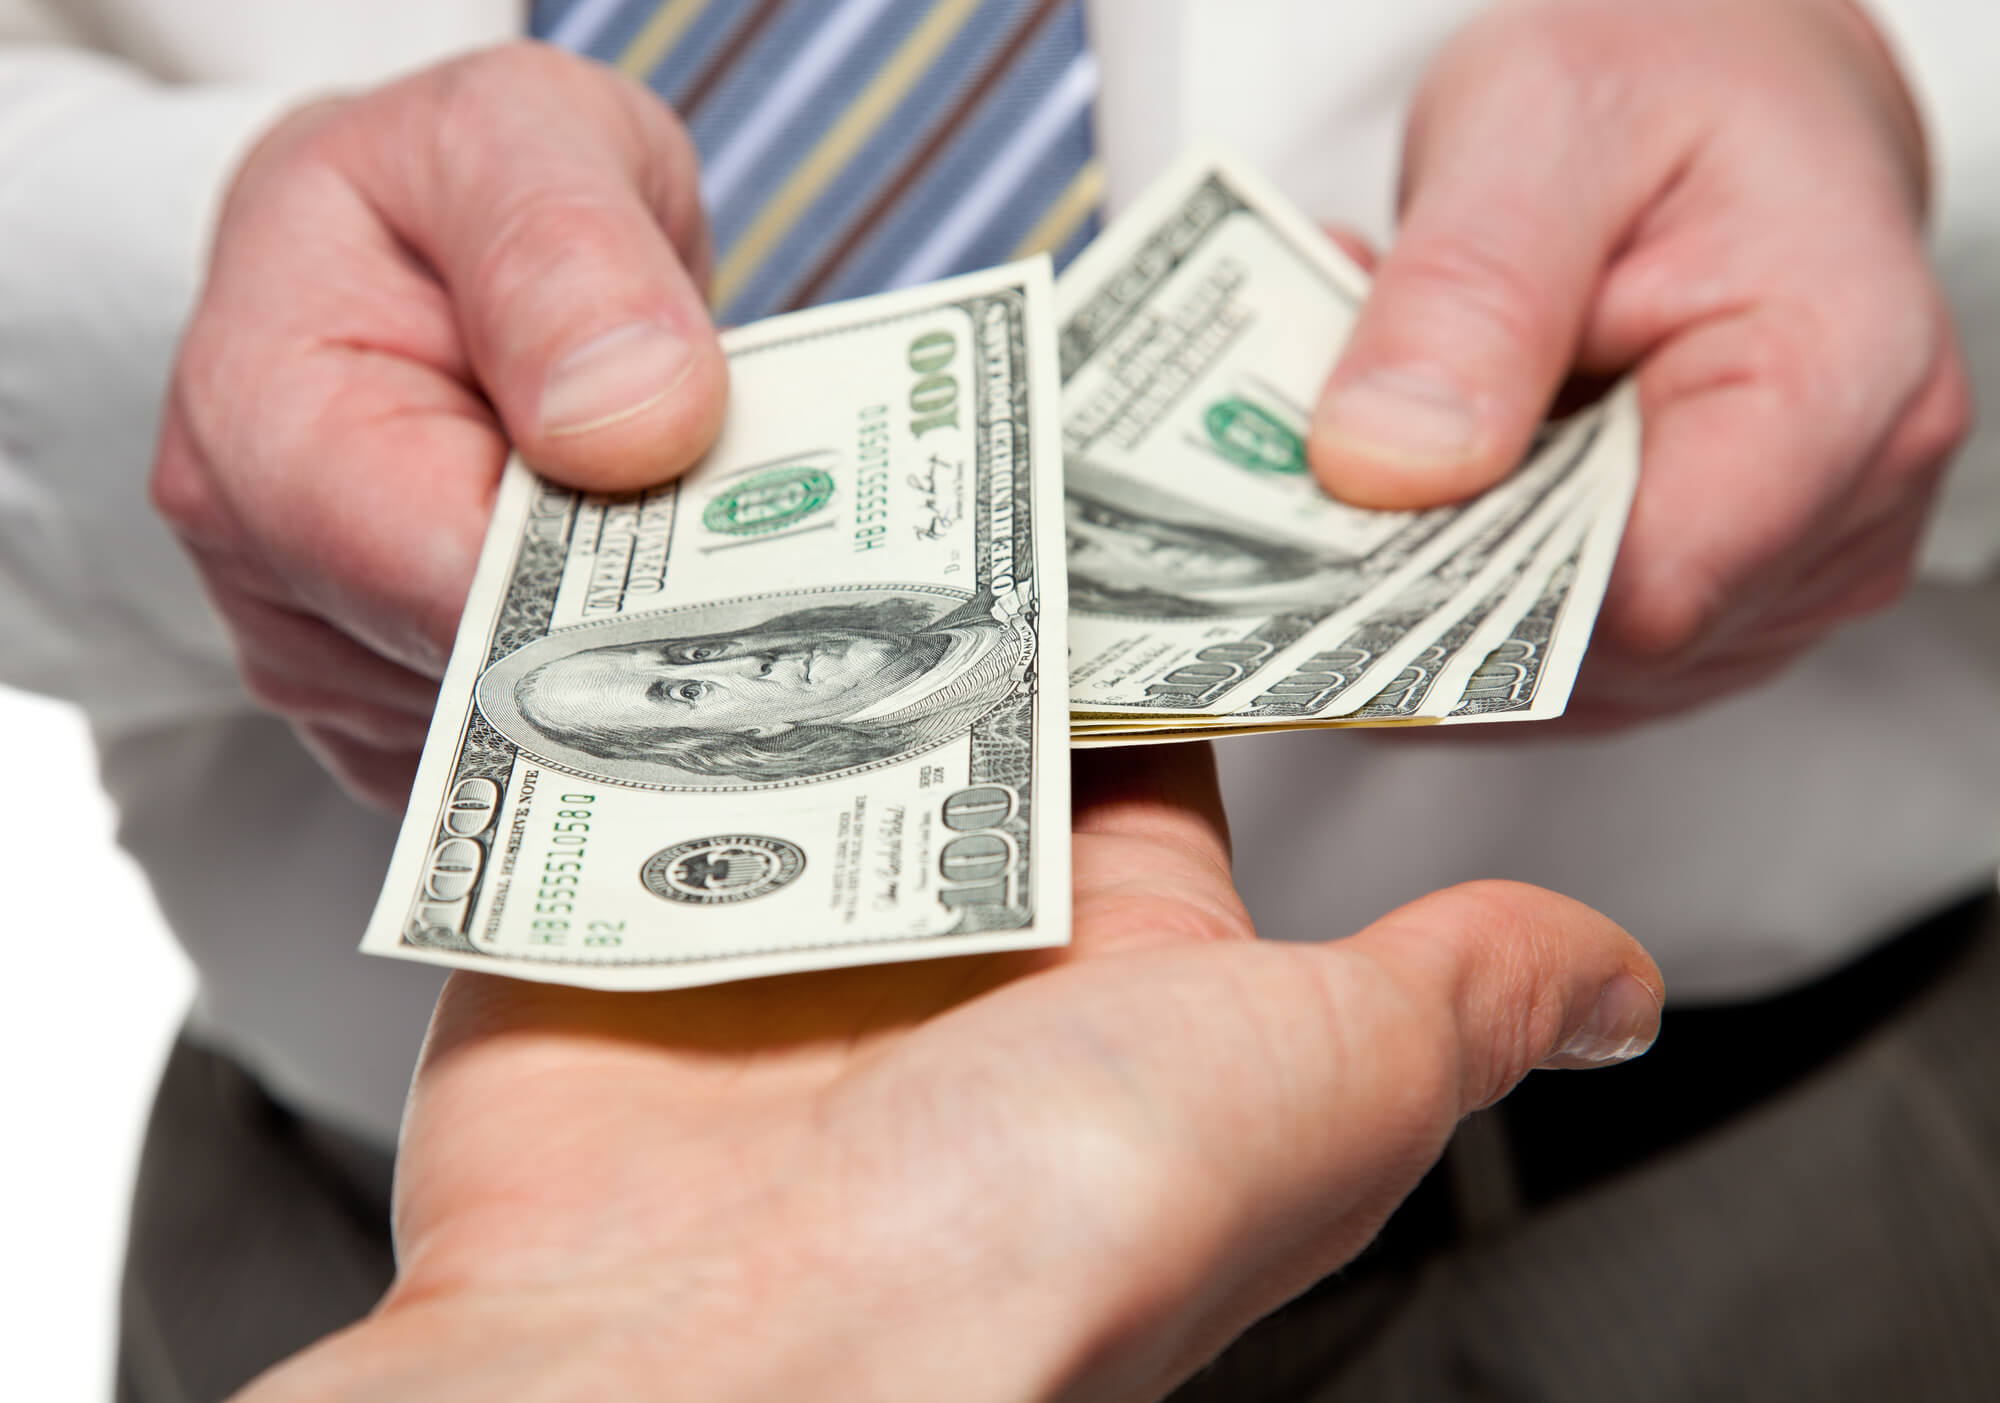 man-handing-dollar-notes-to-another-person